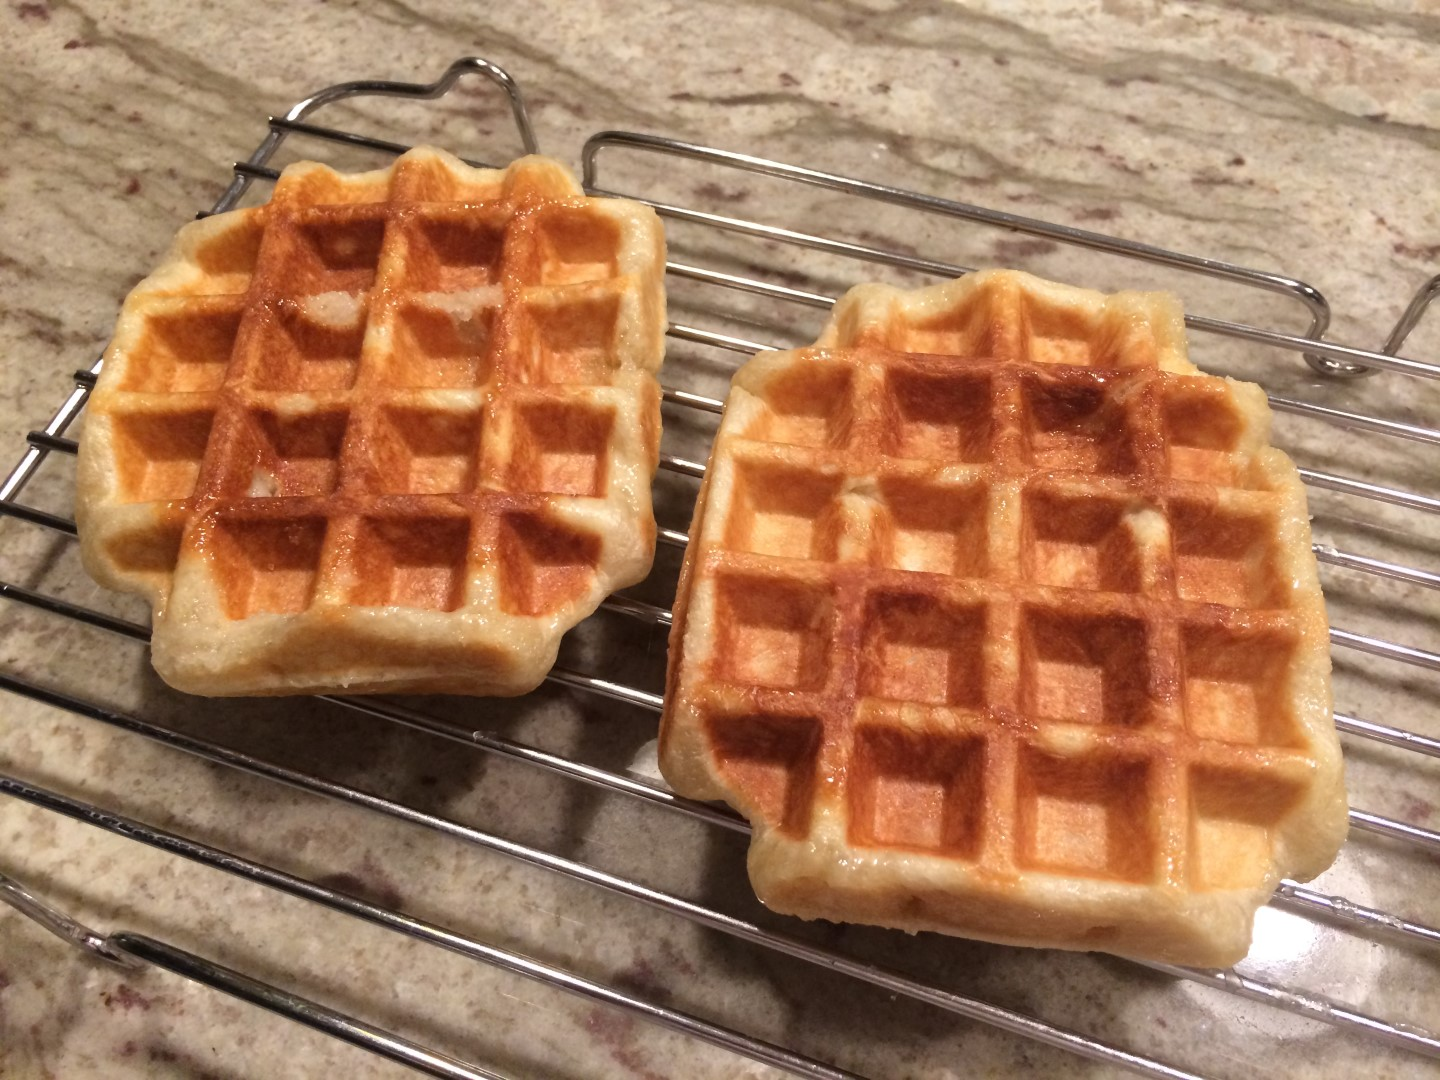 Waffles made on hamilton beach